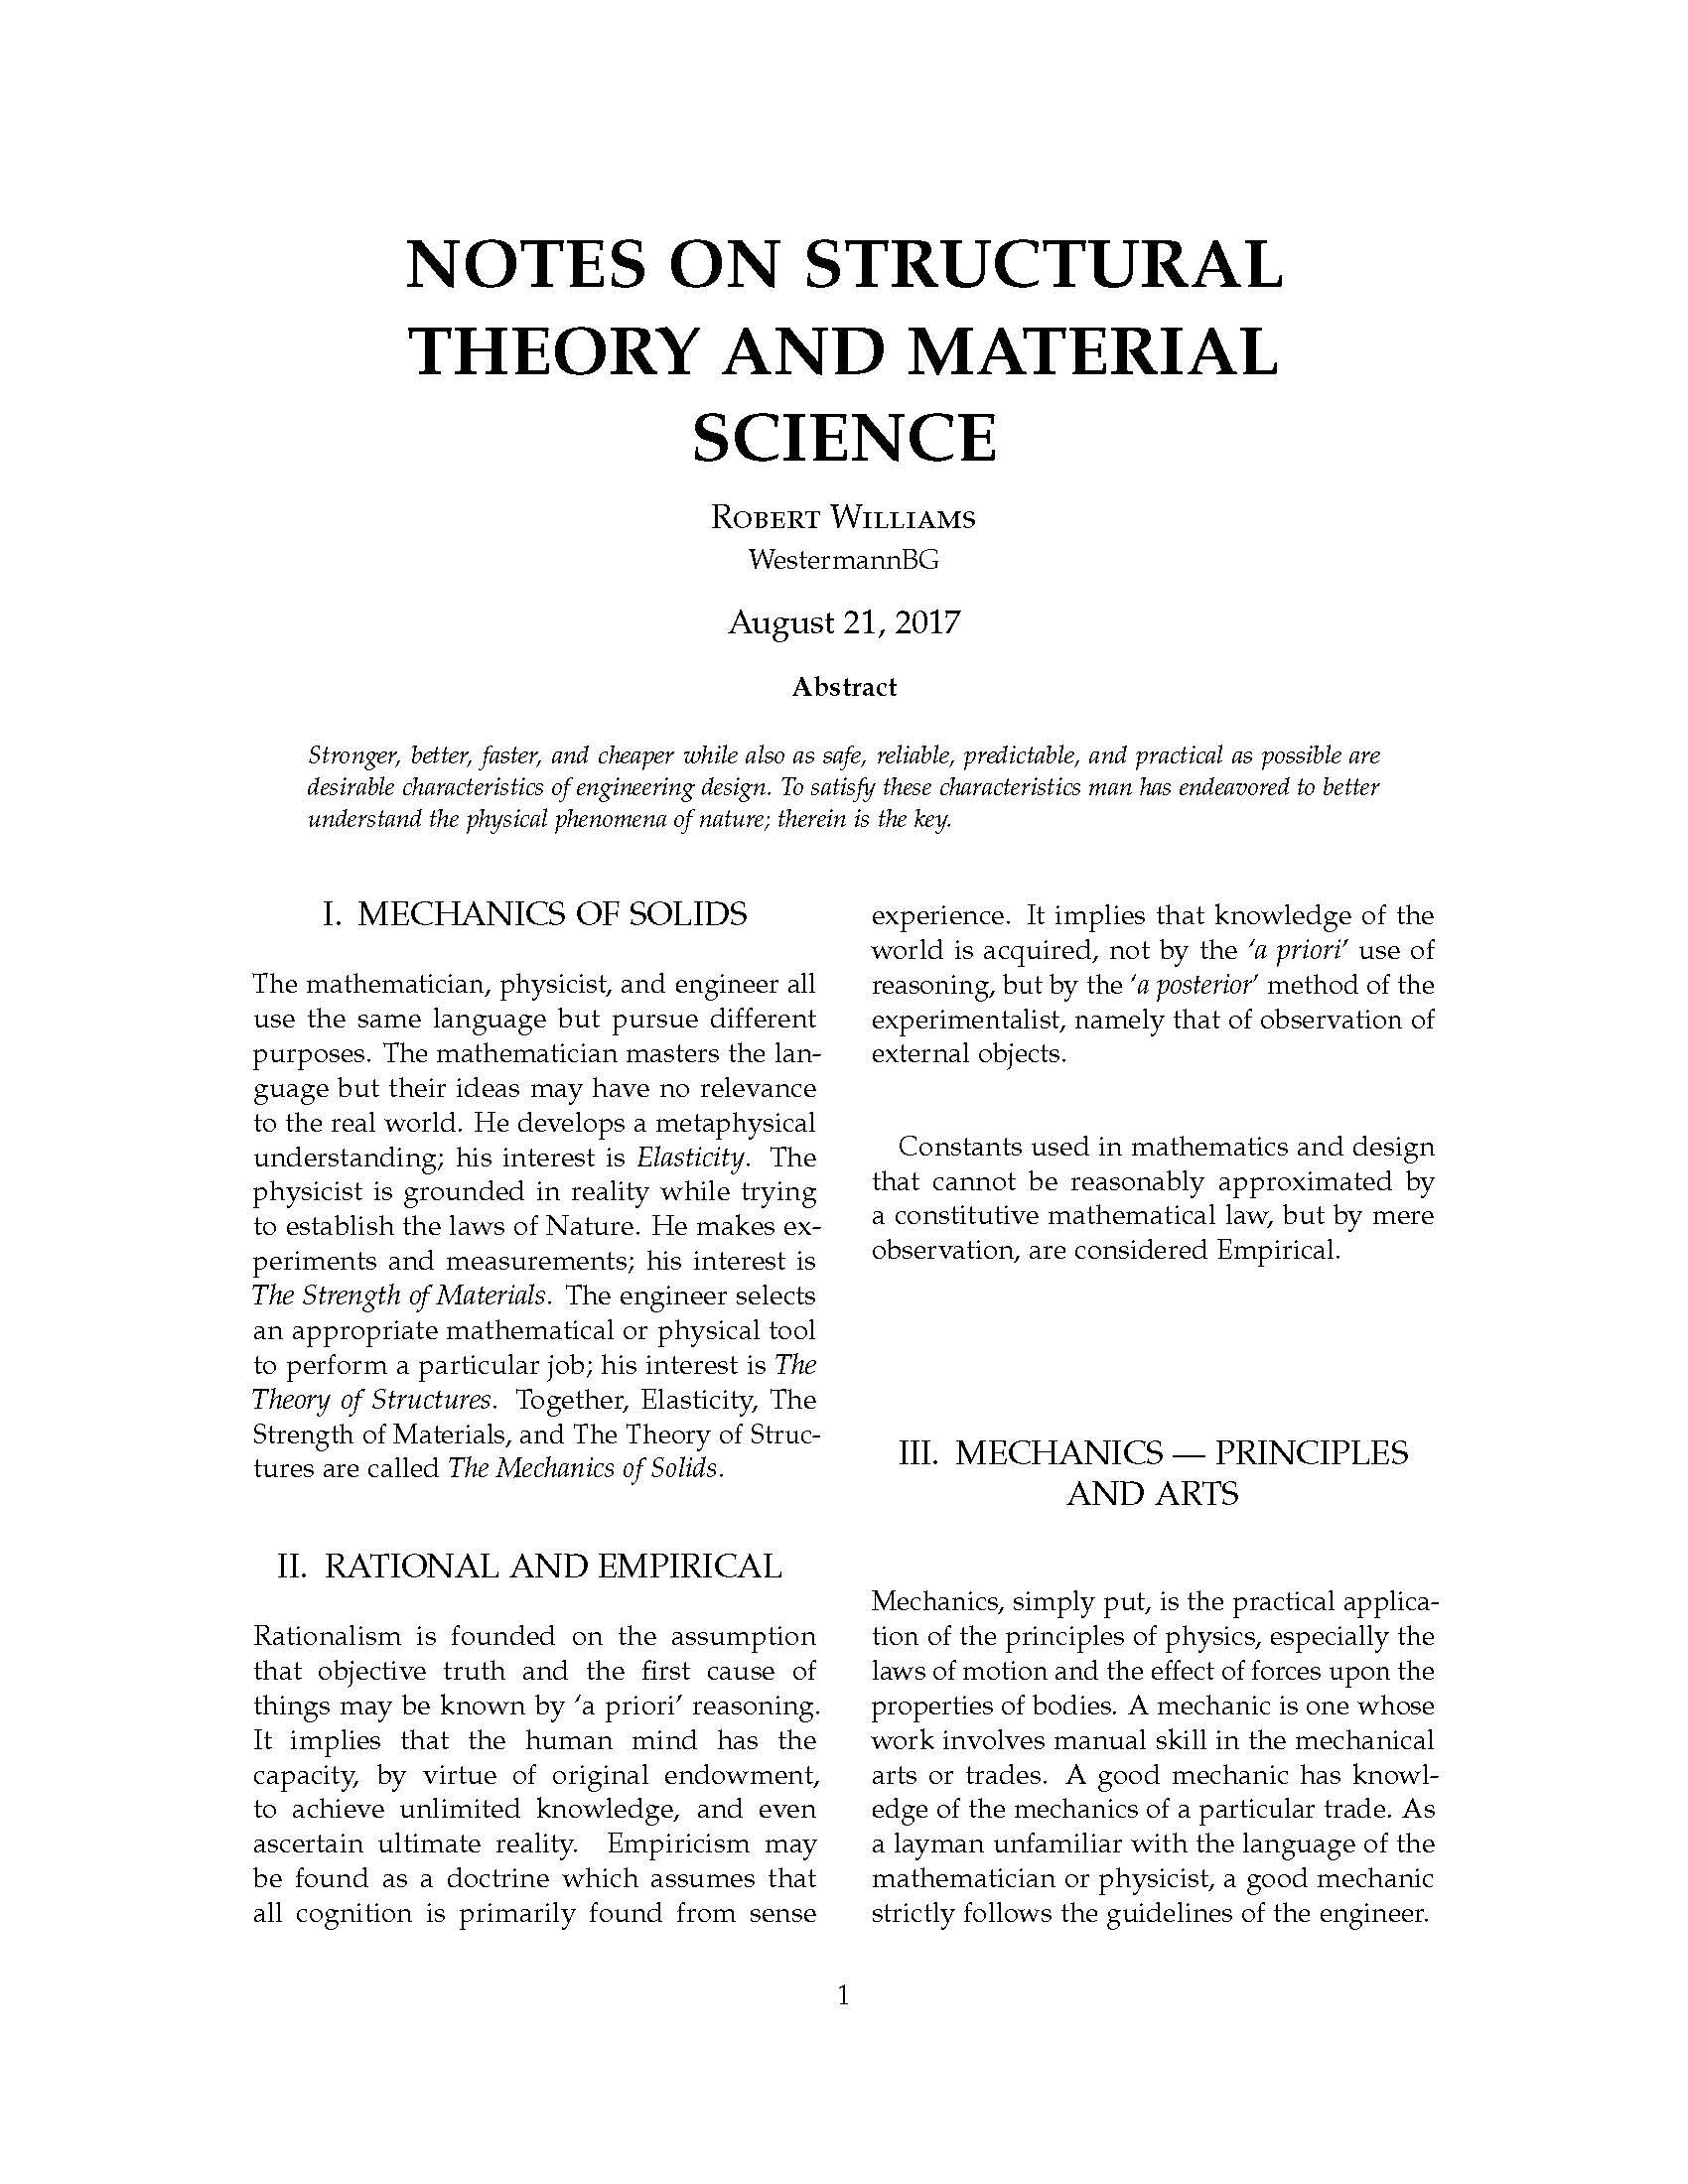 Notes on Structural Theory and Material Science_Page_01.jpg